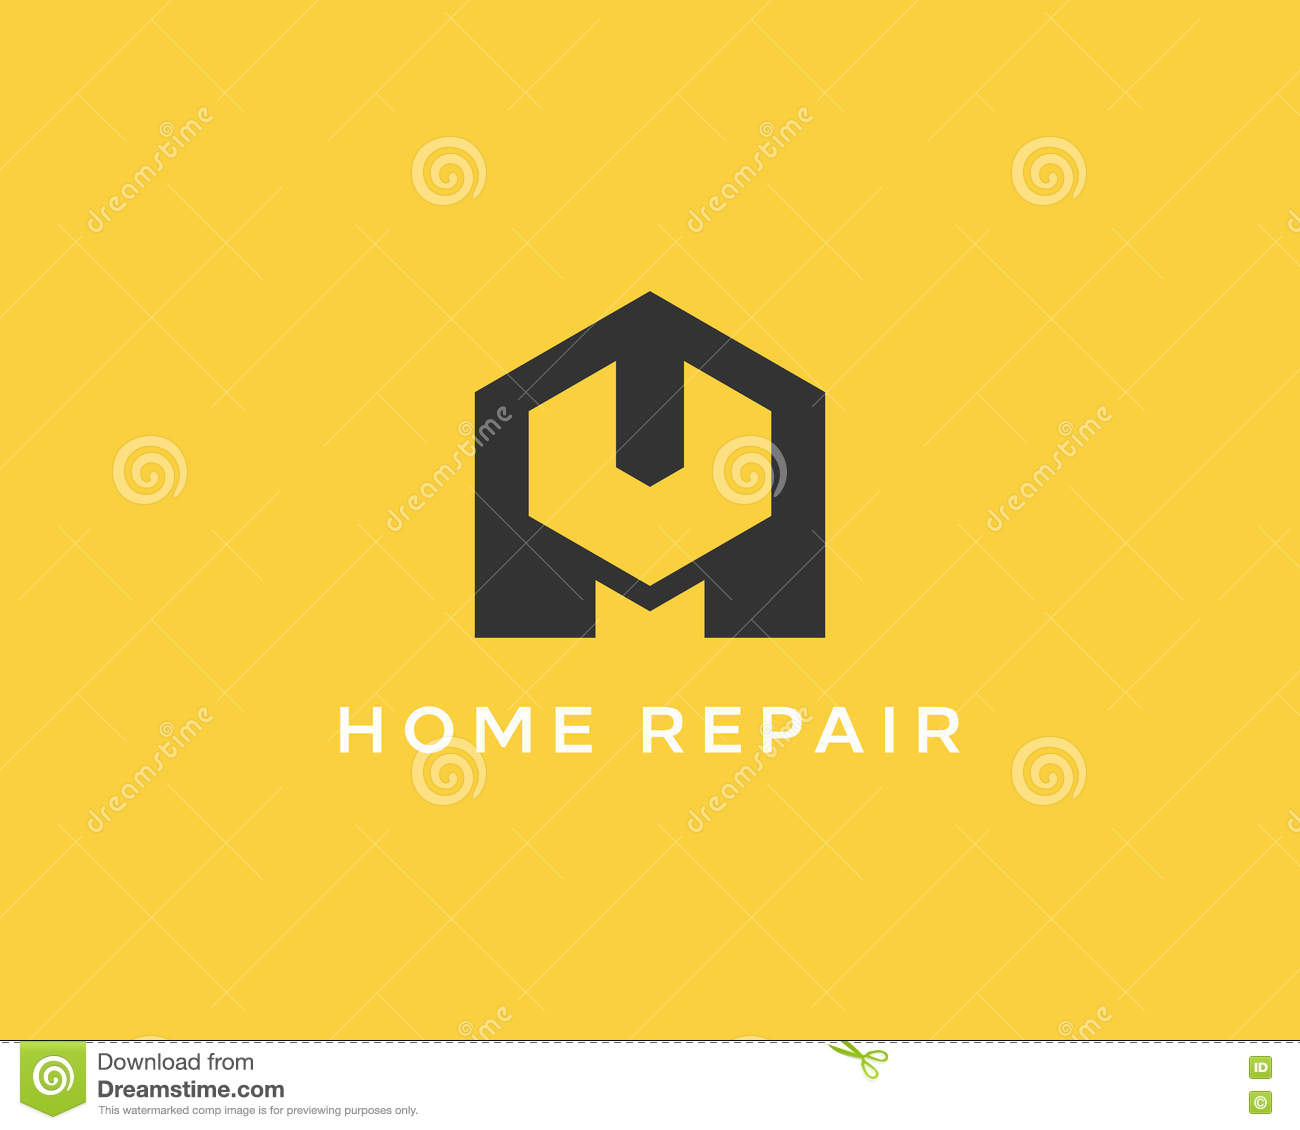 Creative Idea House Repair Service Tool Shop Sign Logotype Creative Idea Wrench